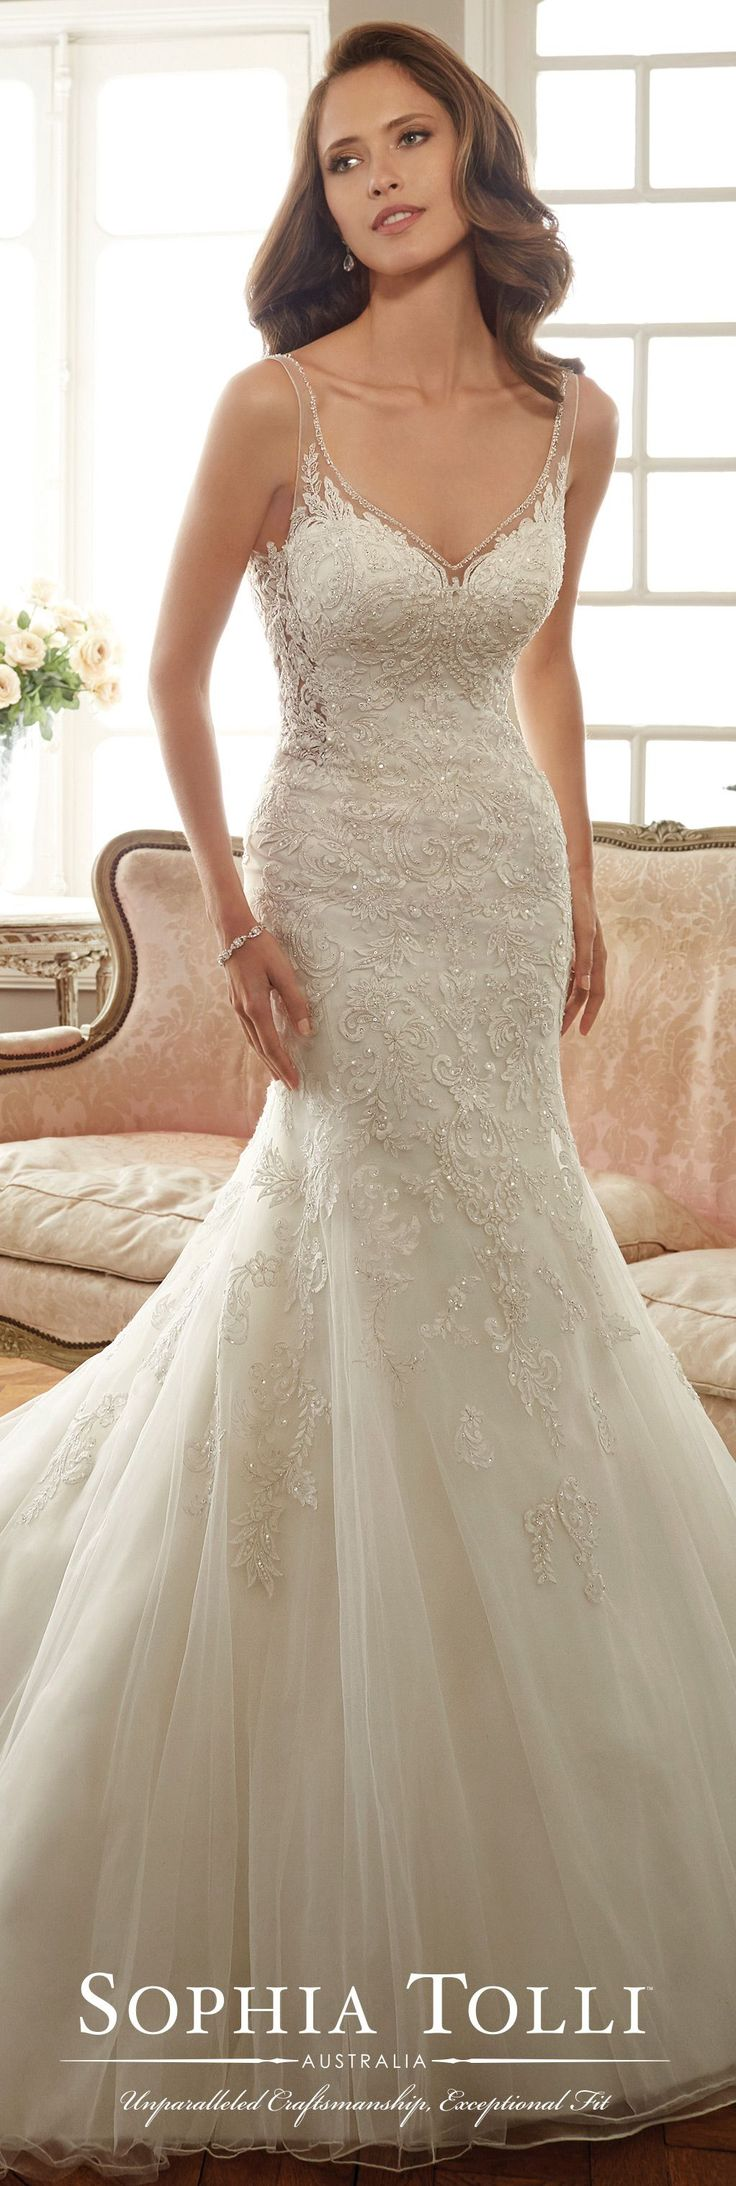 Look at this train! Sleeveless misty tulle fit and flare gown with slender illusion shoulder straps. Sophia Tolli - Y11707